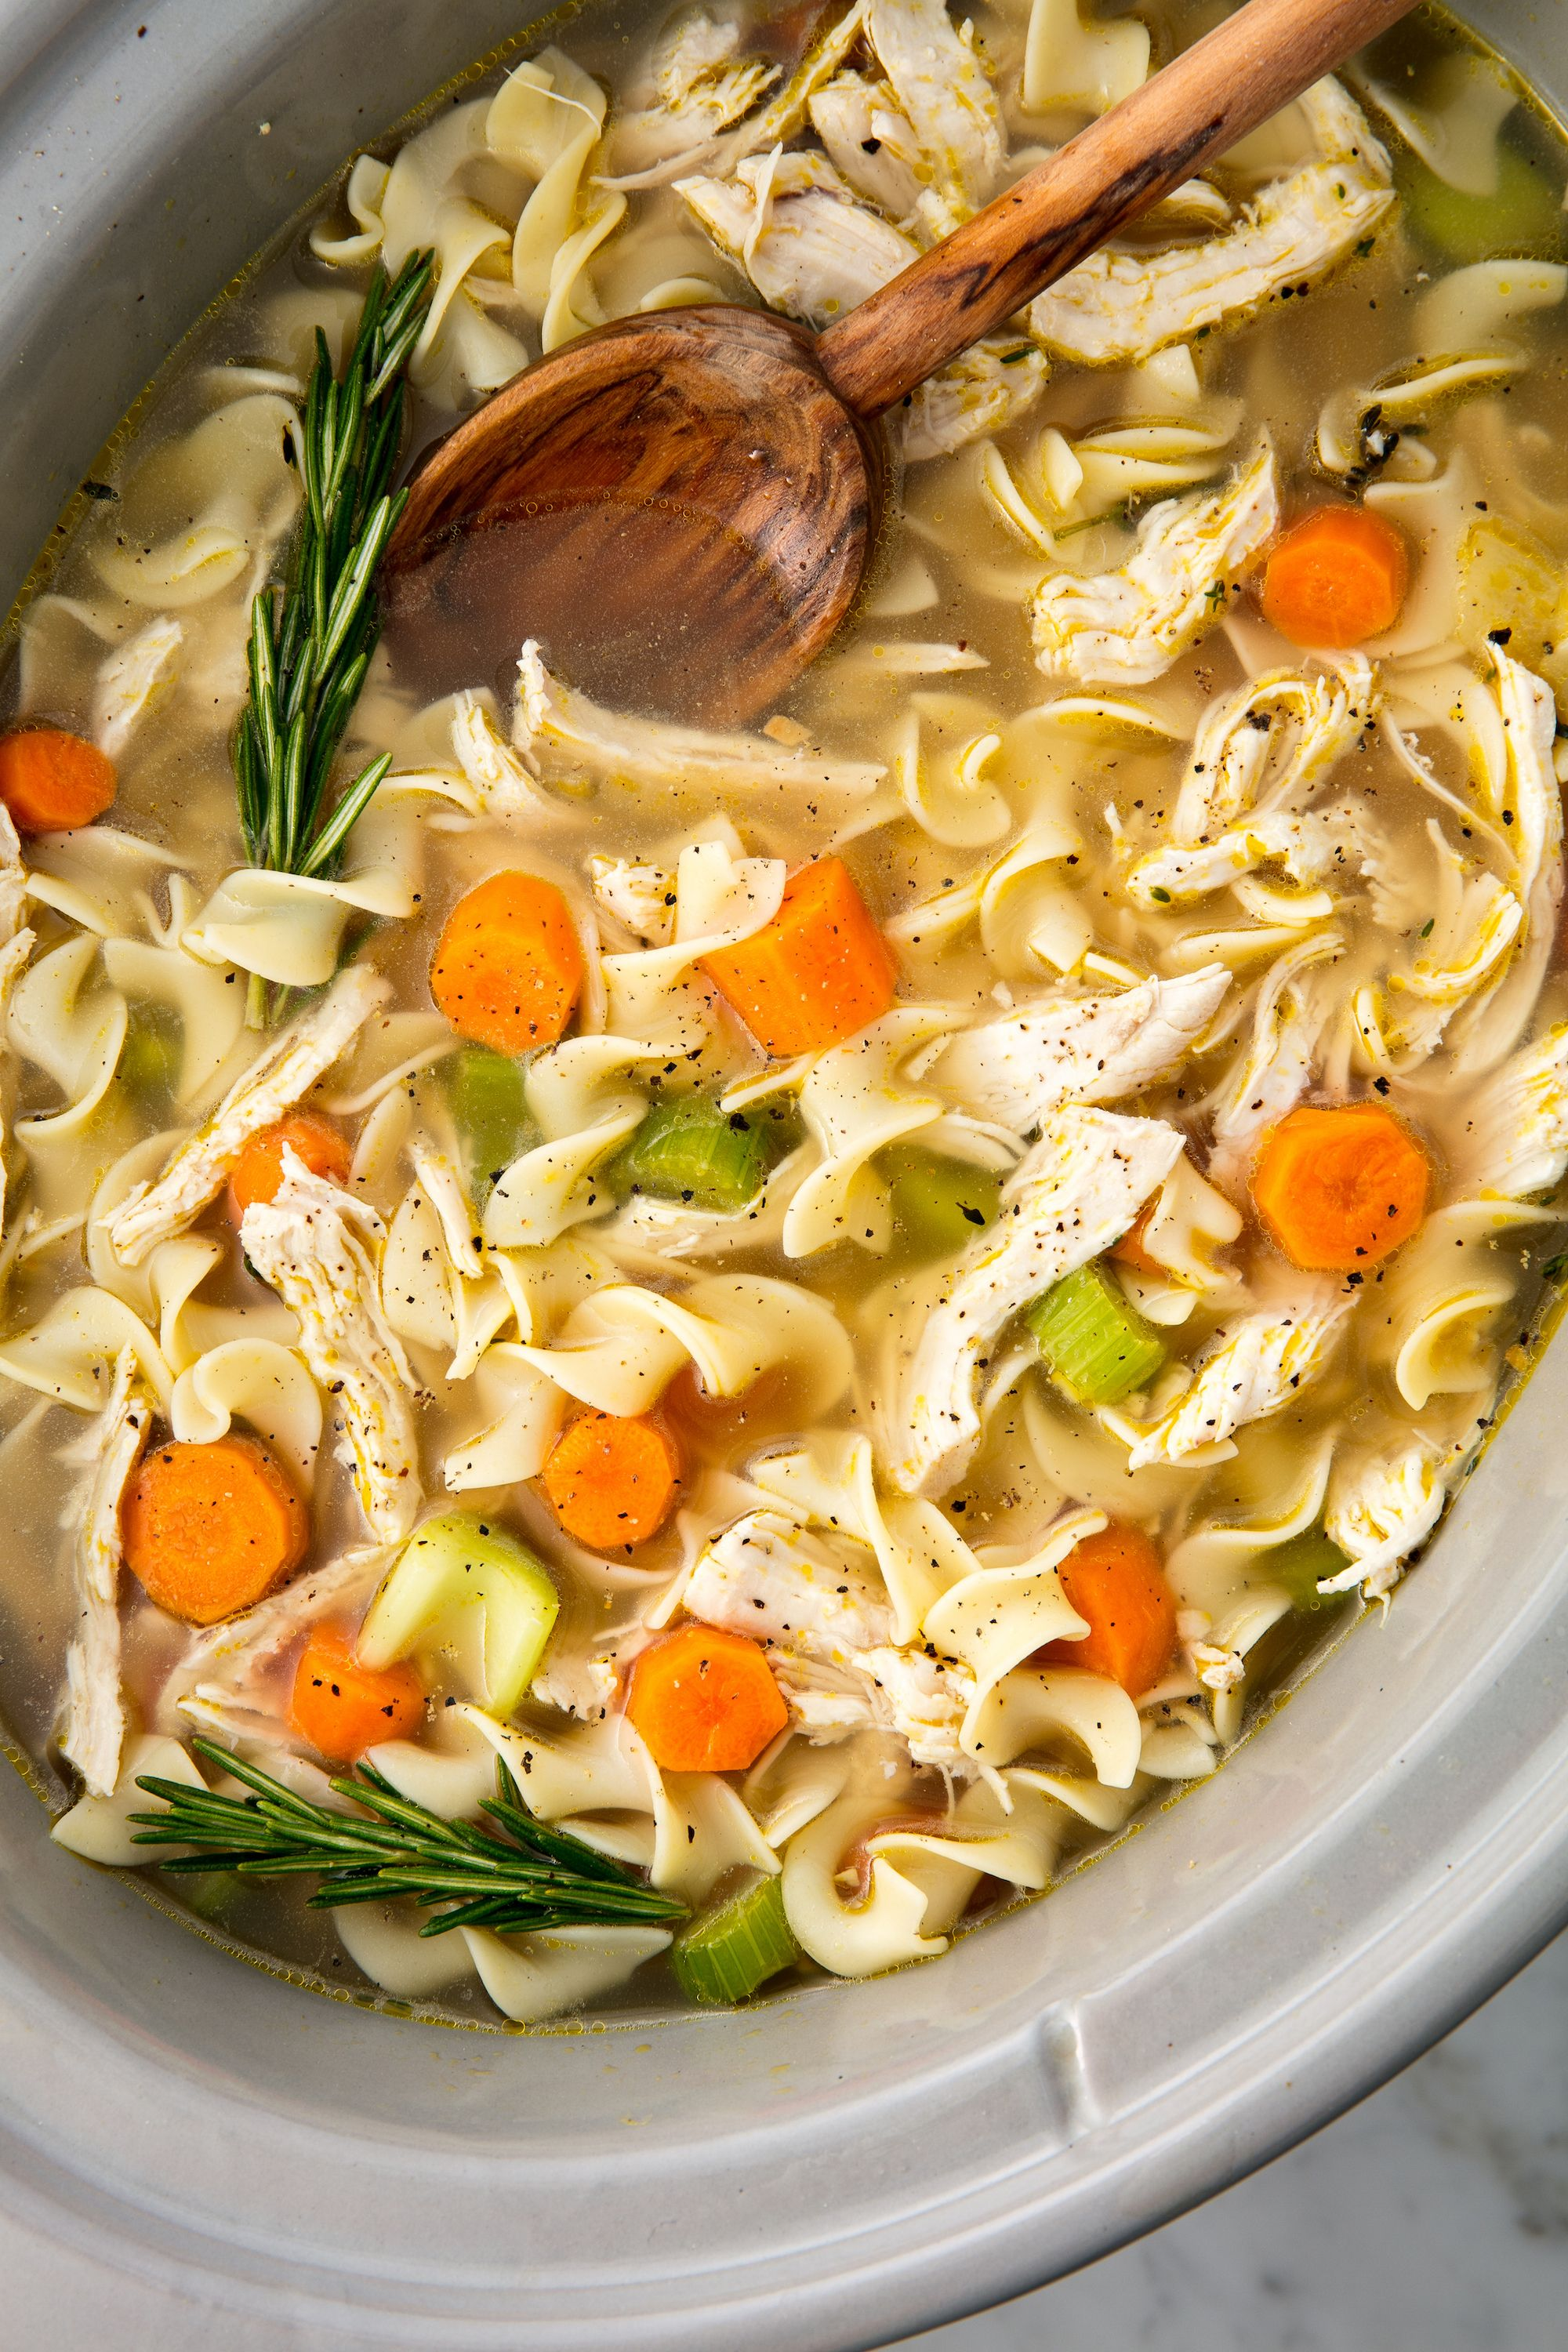 Easy Crockpot Chicken Noodle Soup Recipe How To Make Slow Cooker